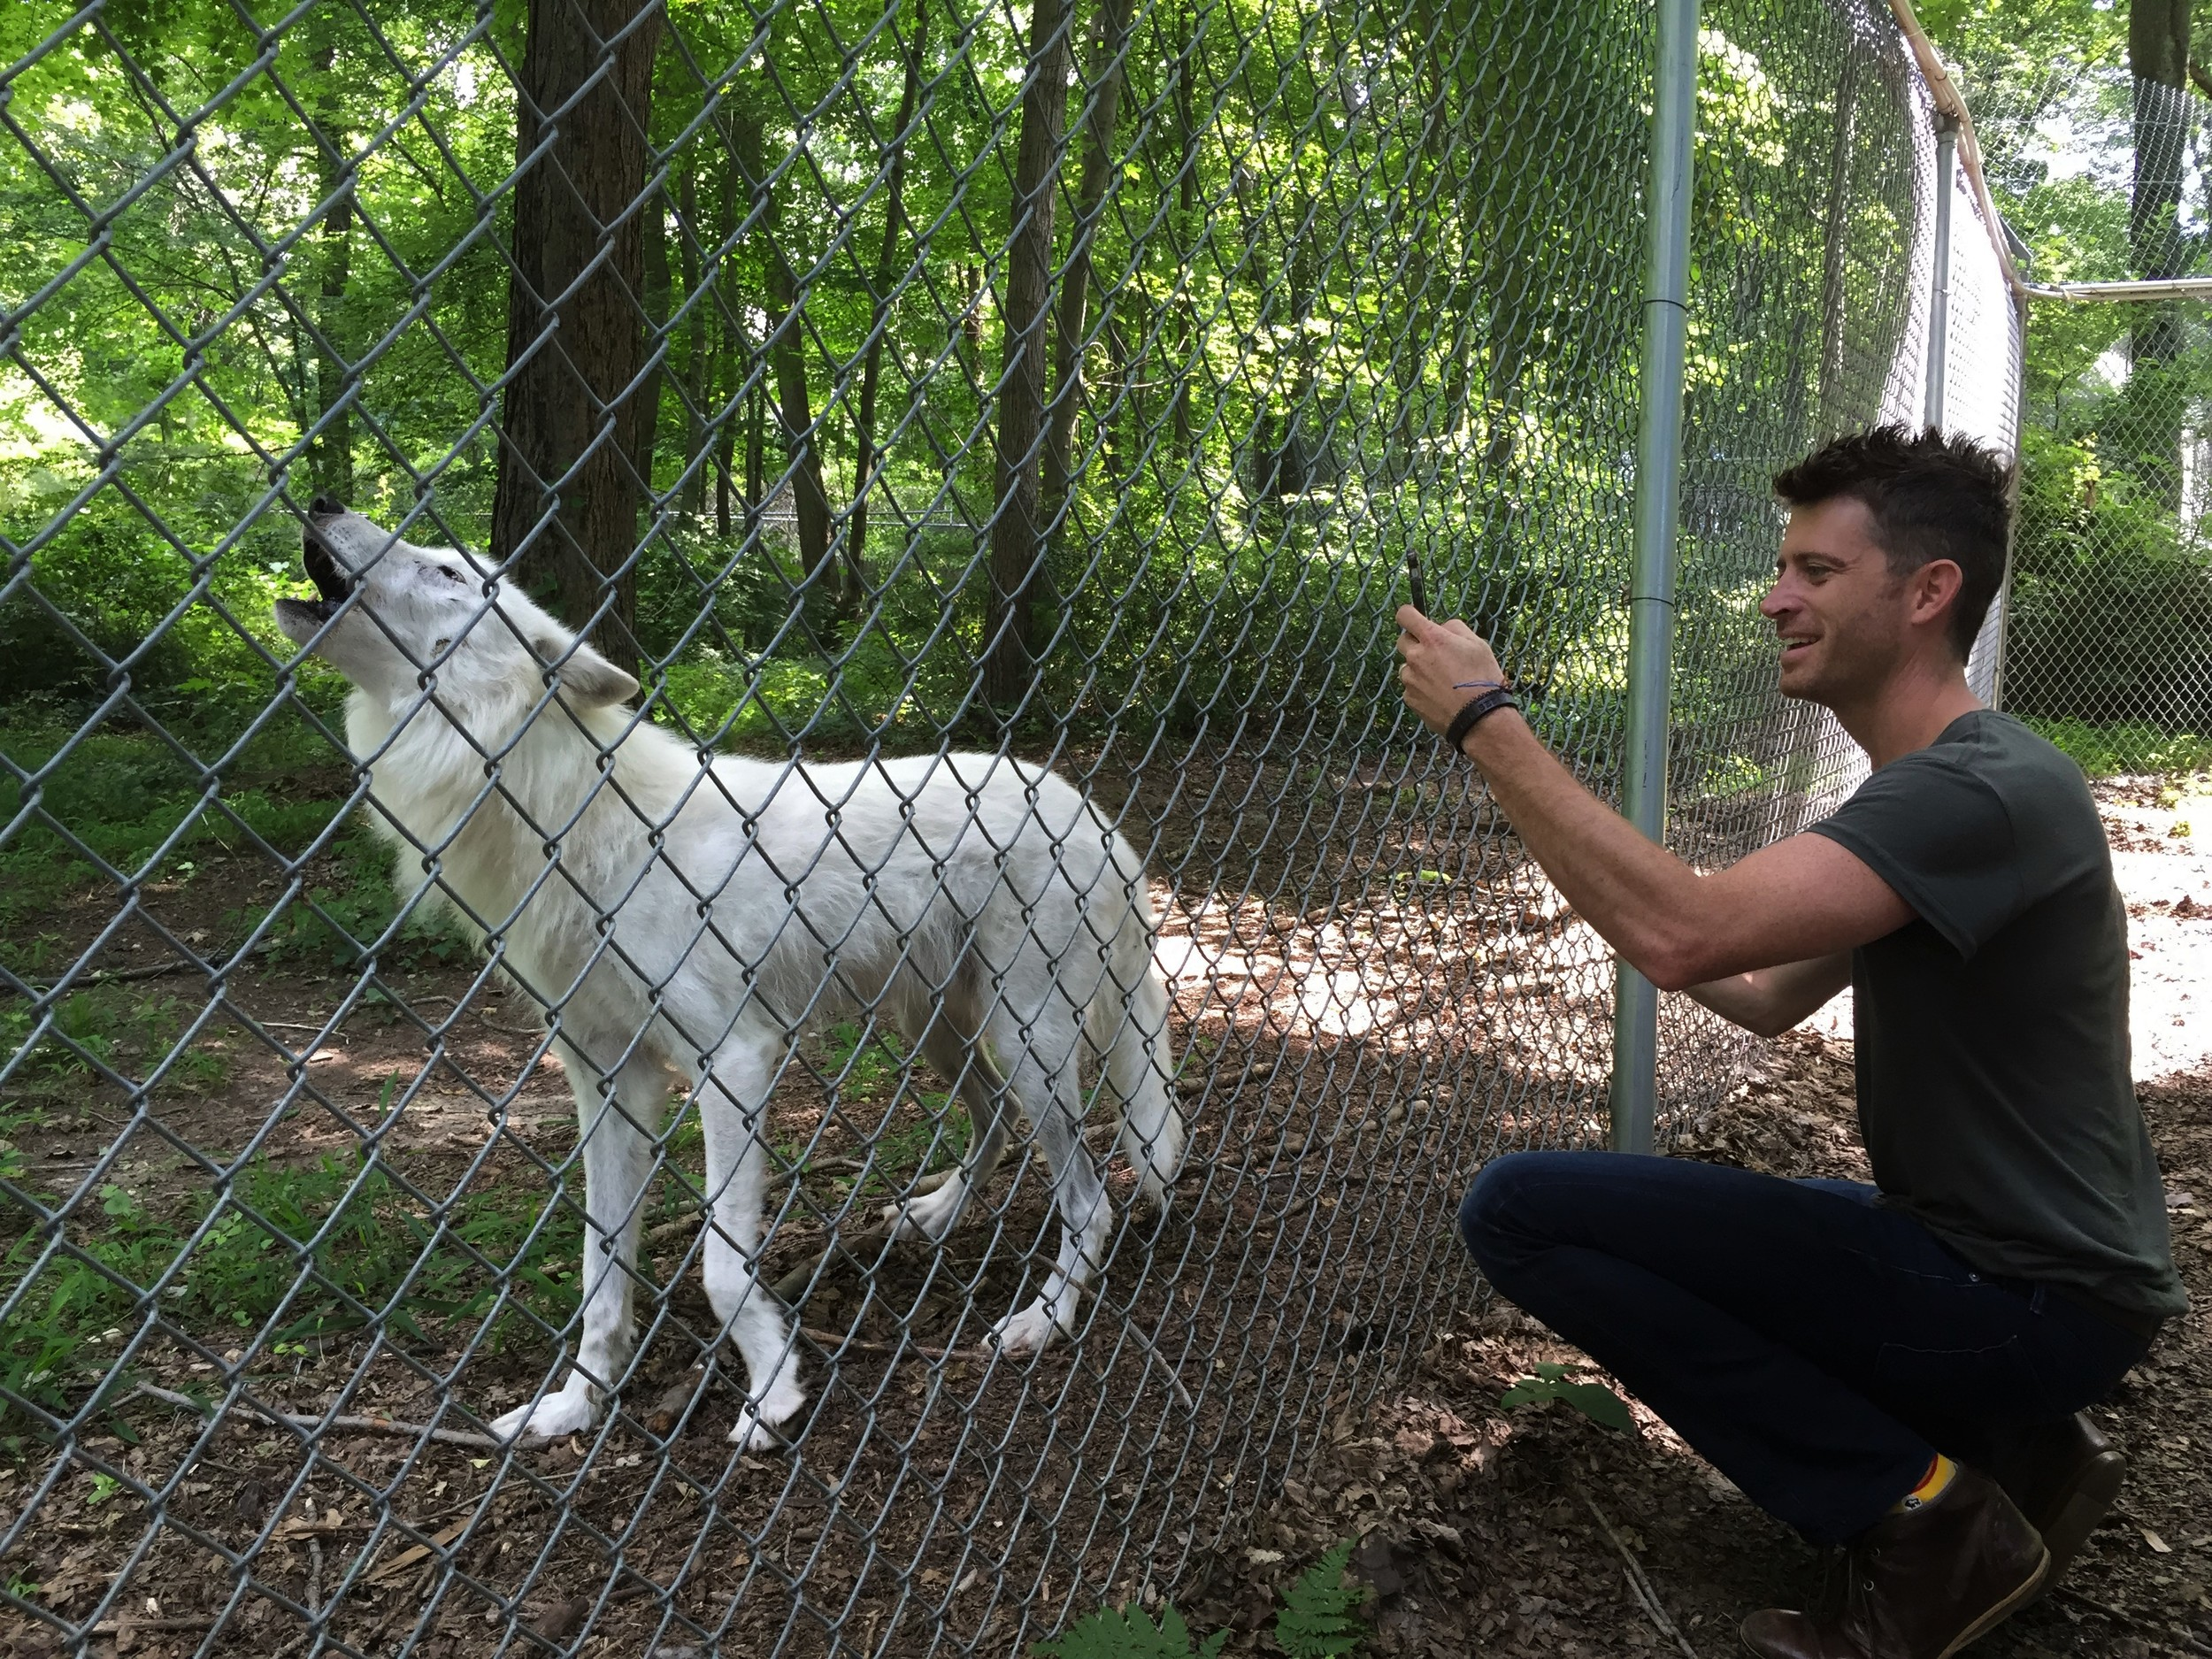 Brendan meets Atka at the Wolf Conservation Center, South Salem, NY